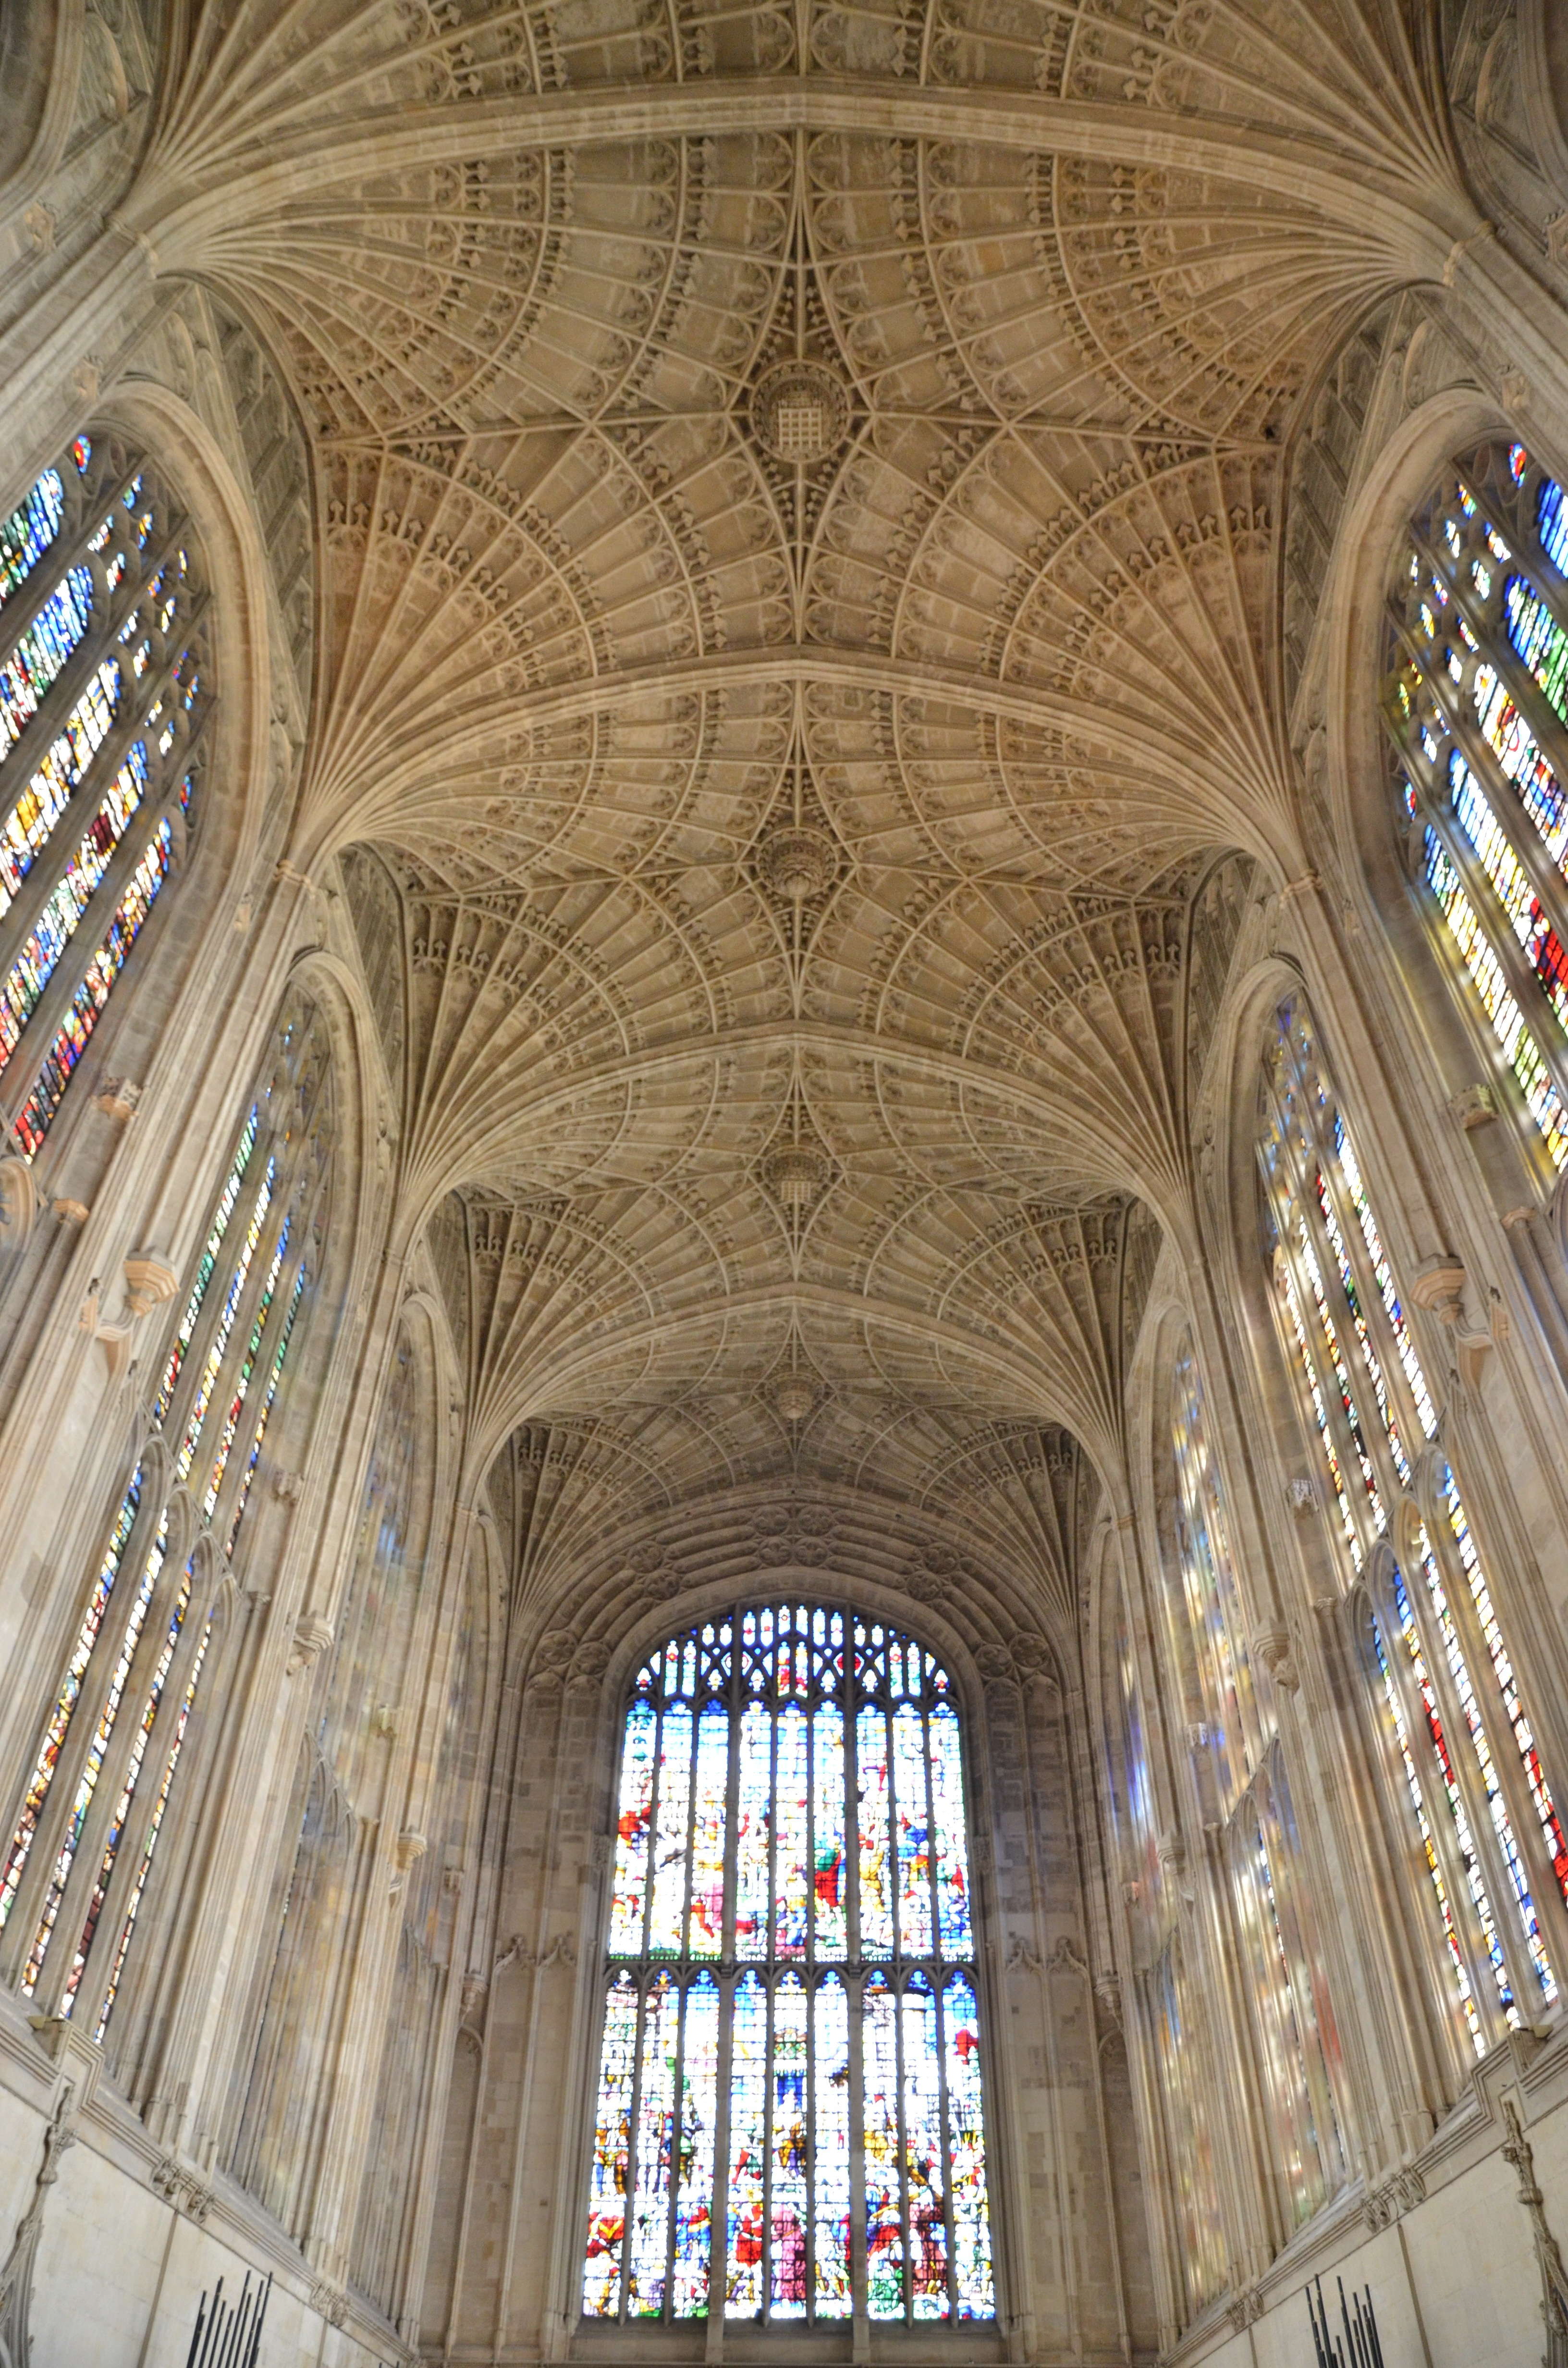 King's Chapel, Cambridge, UK